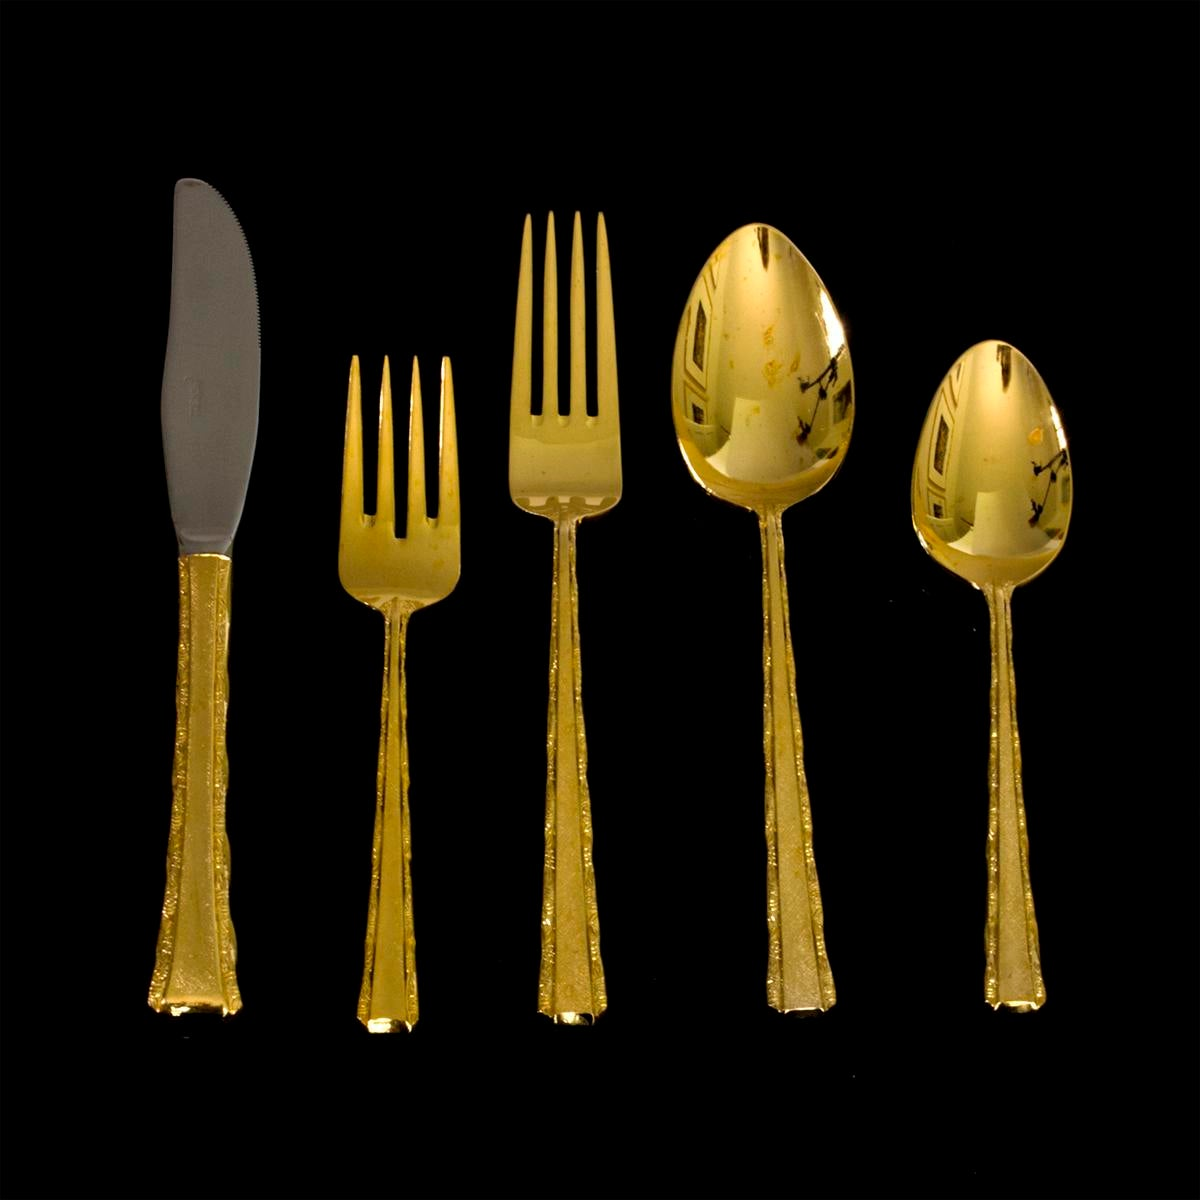 Vintage Gold Plated Dinner Service - 104 Pieces - Image 2 of 5  sc 1 st  Chairish & Vintage Gold Plated Dinner Service - 104 Pieces | Chairish